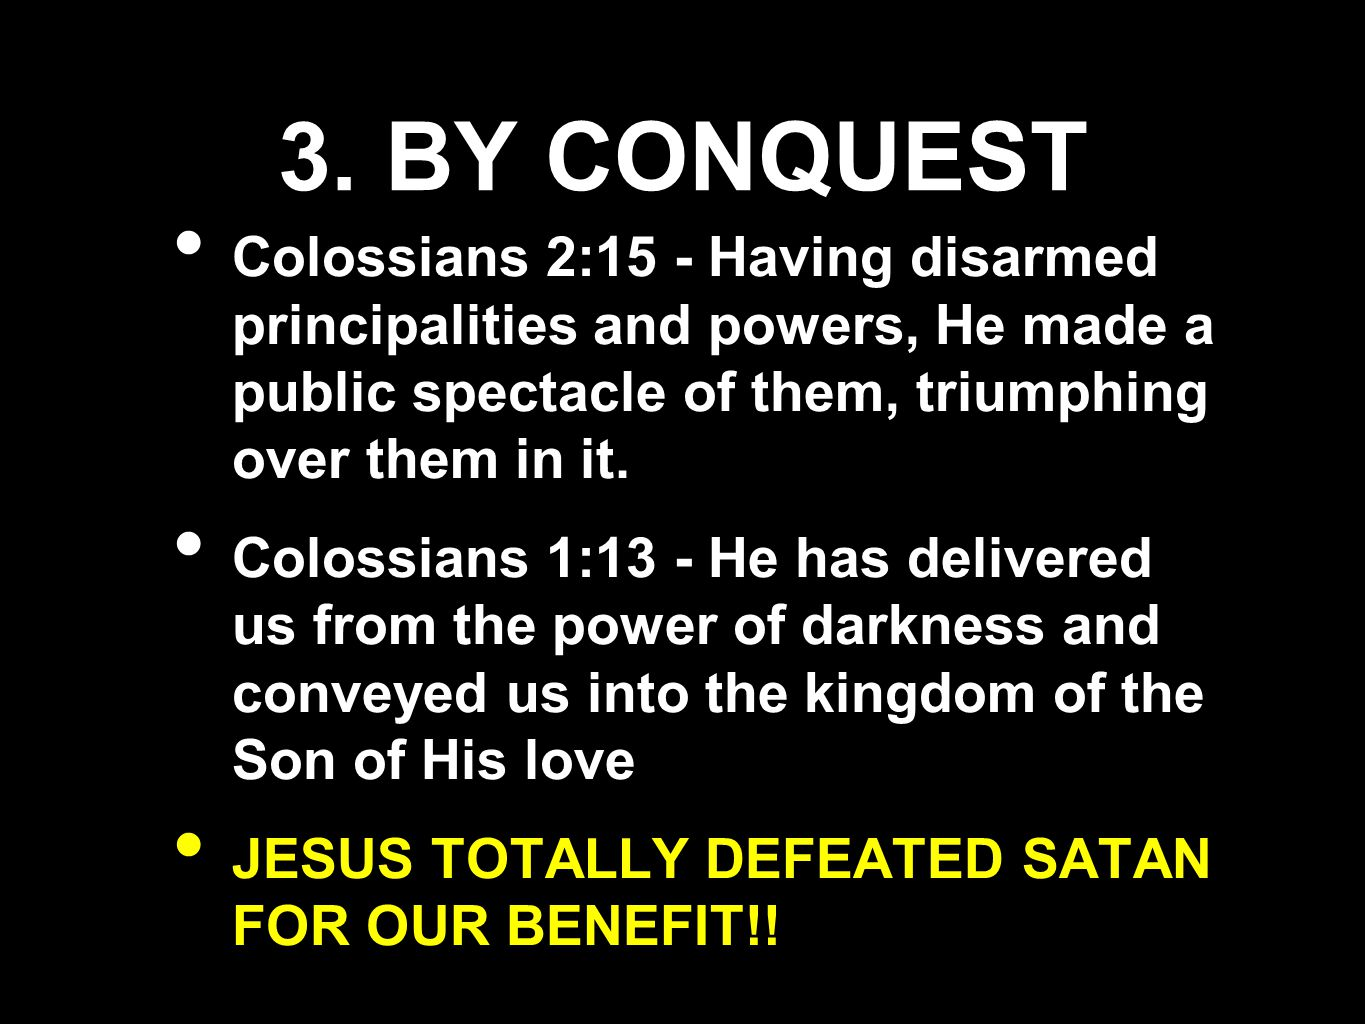 3. BY CONQUEST Colossians 2:15 - Having disarmed principalities and powers, He made a public spectacle of them, triumphing over them in it.